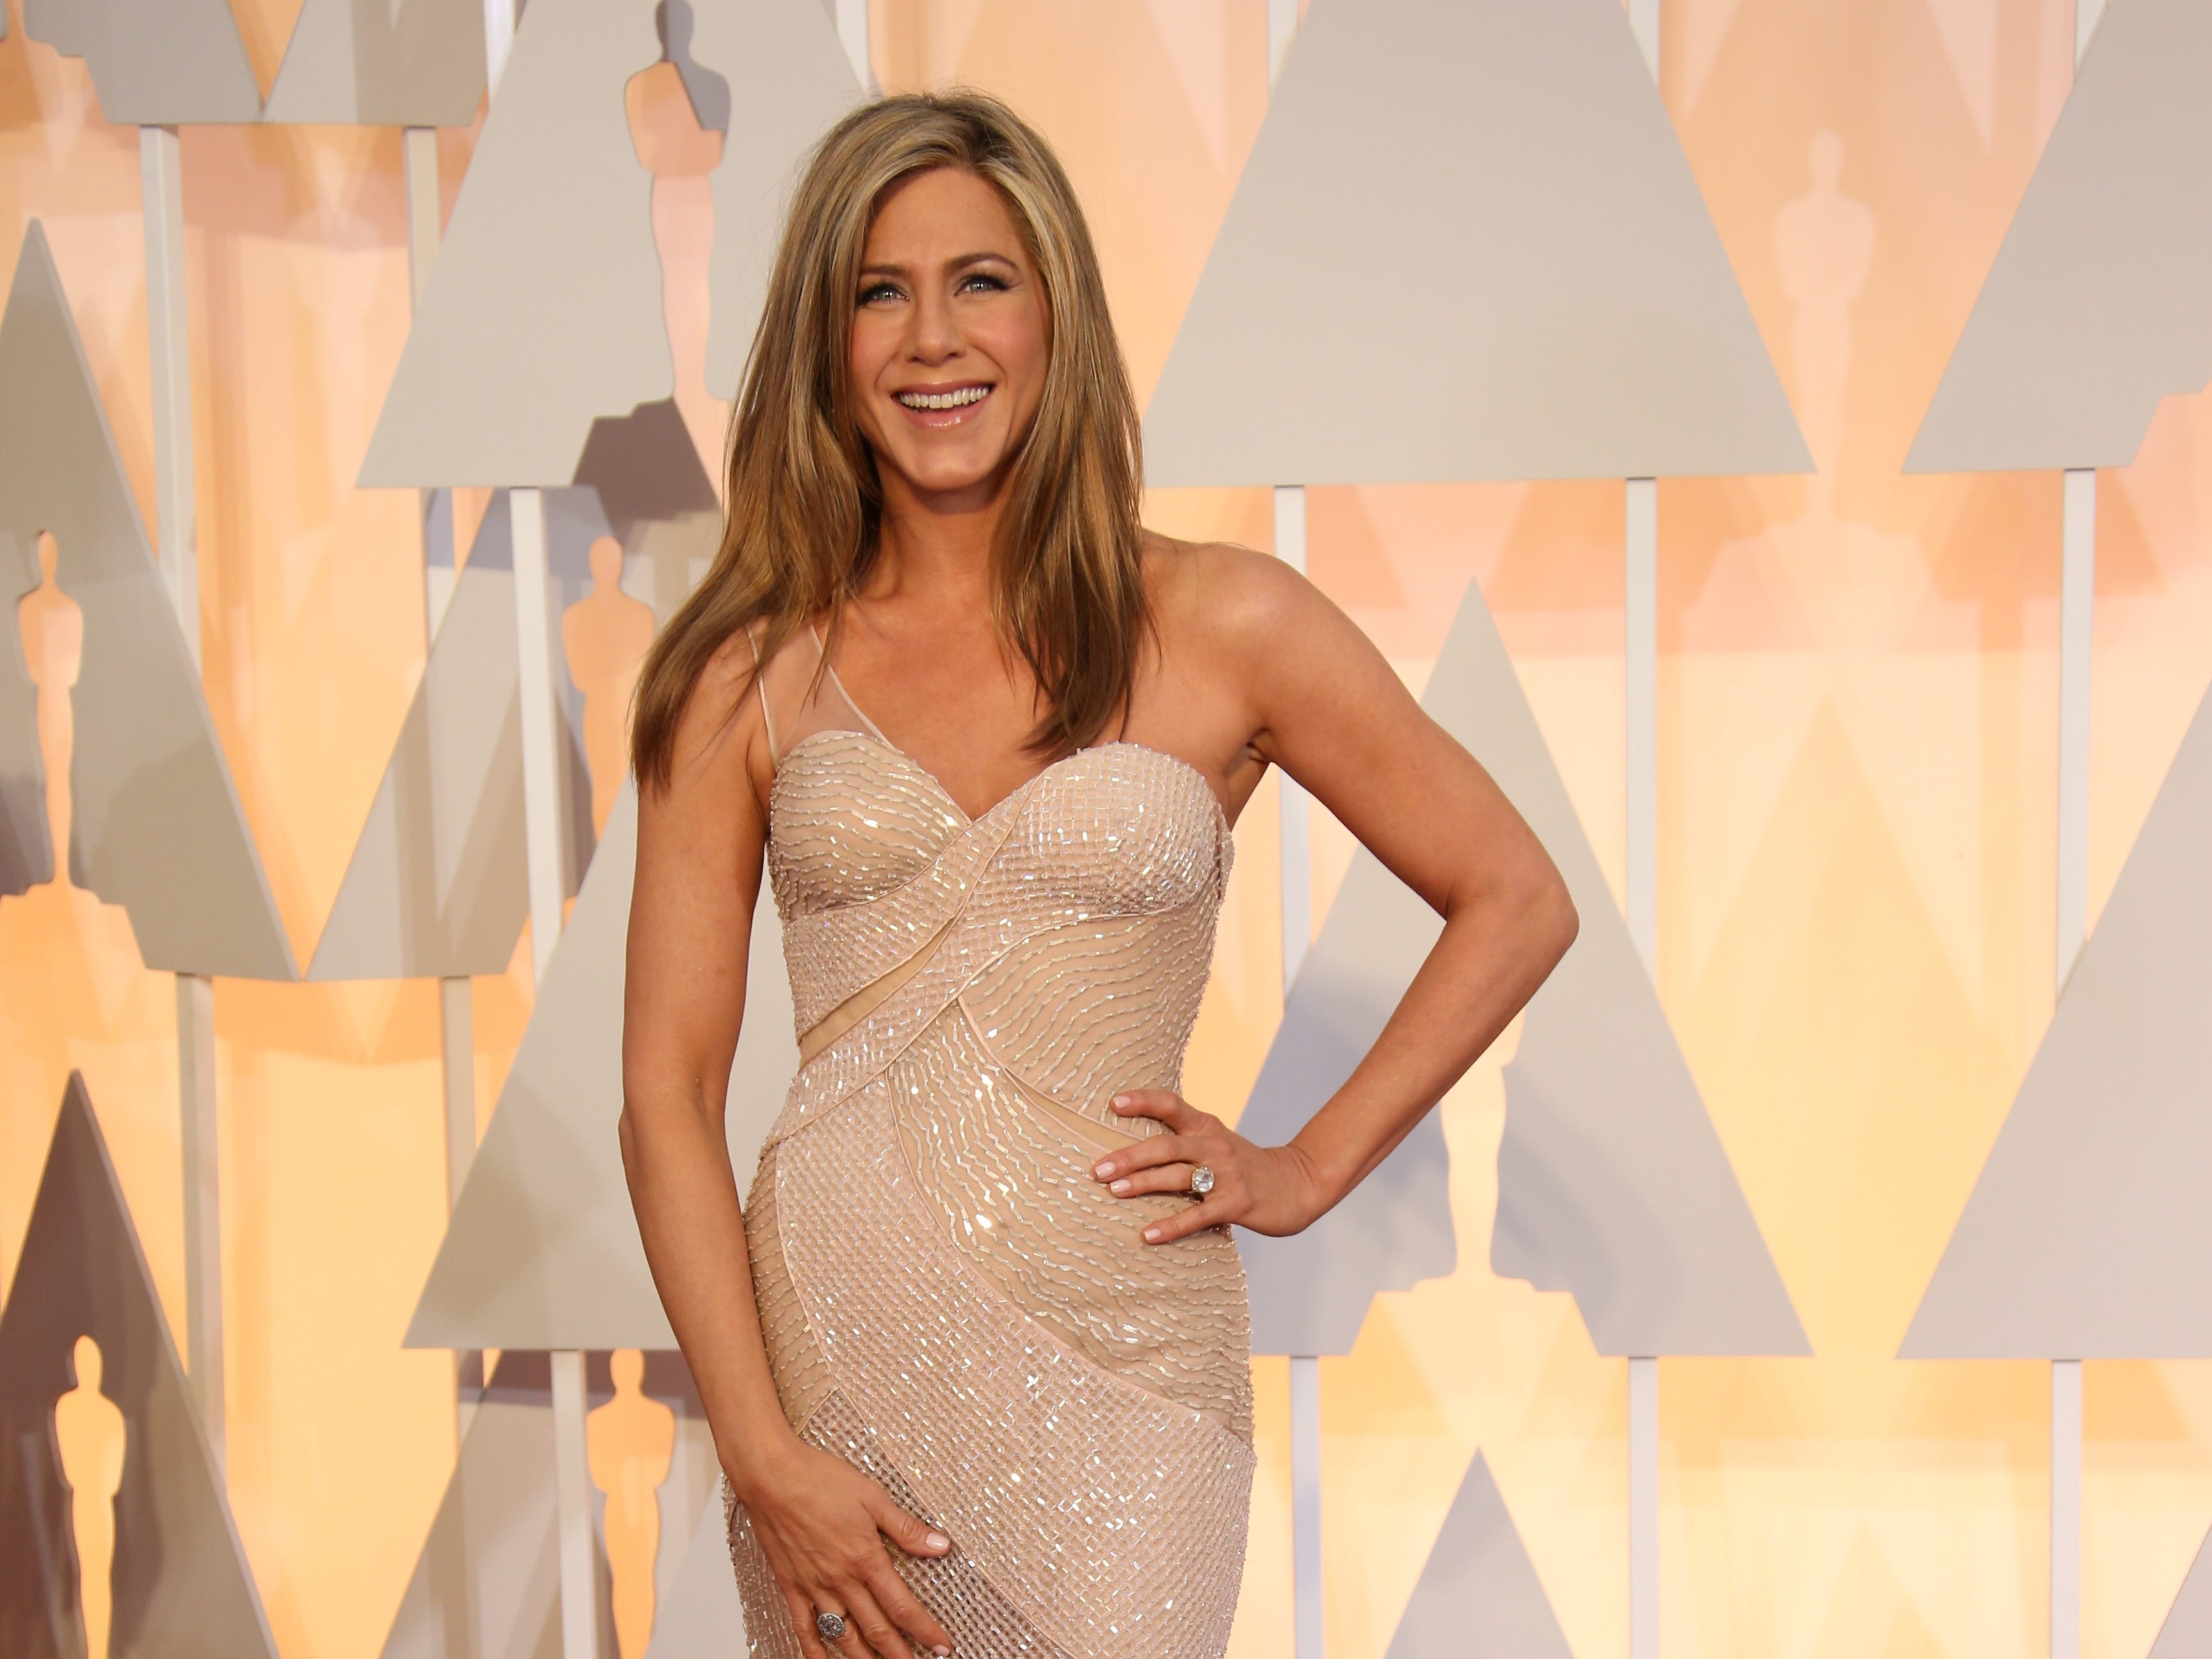 2/22/15 4:59:29 PM -- Los Angeles, CA, U.S.A  -- Jennifer Aniston arrives at the 87th annual Academy Awards at the Dolby Theatre. --    Photo by Dan MacMedan, USA TODAY contract photographer  ORG XMIT:  DM 132487 2015 OSCARS 2/18/2015 (Via OlyDrop)